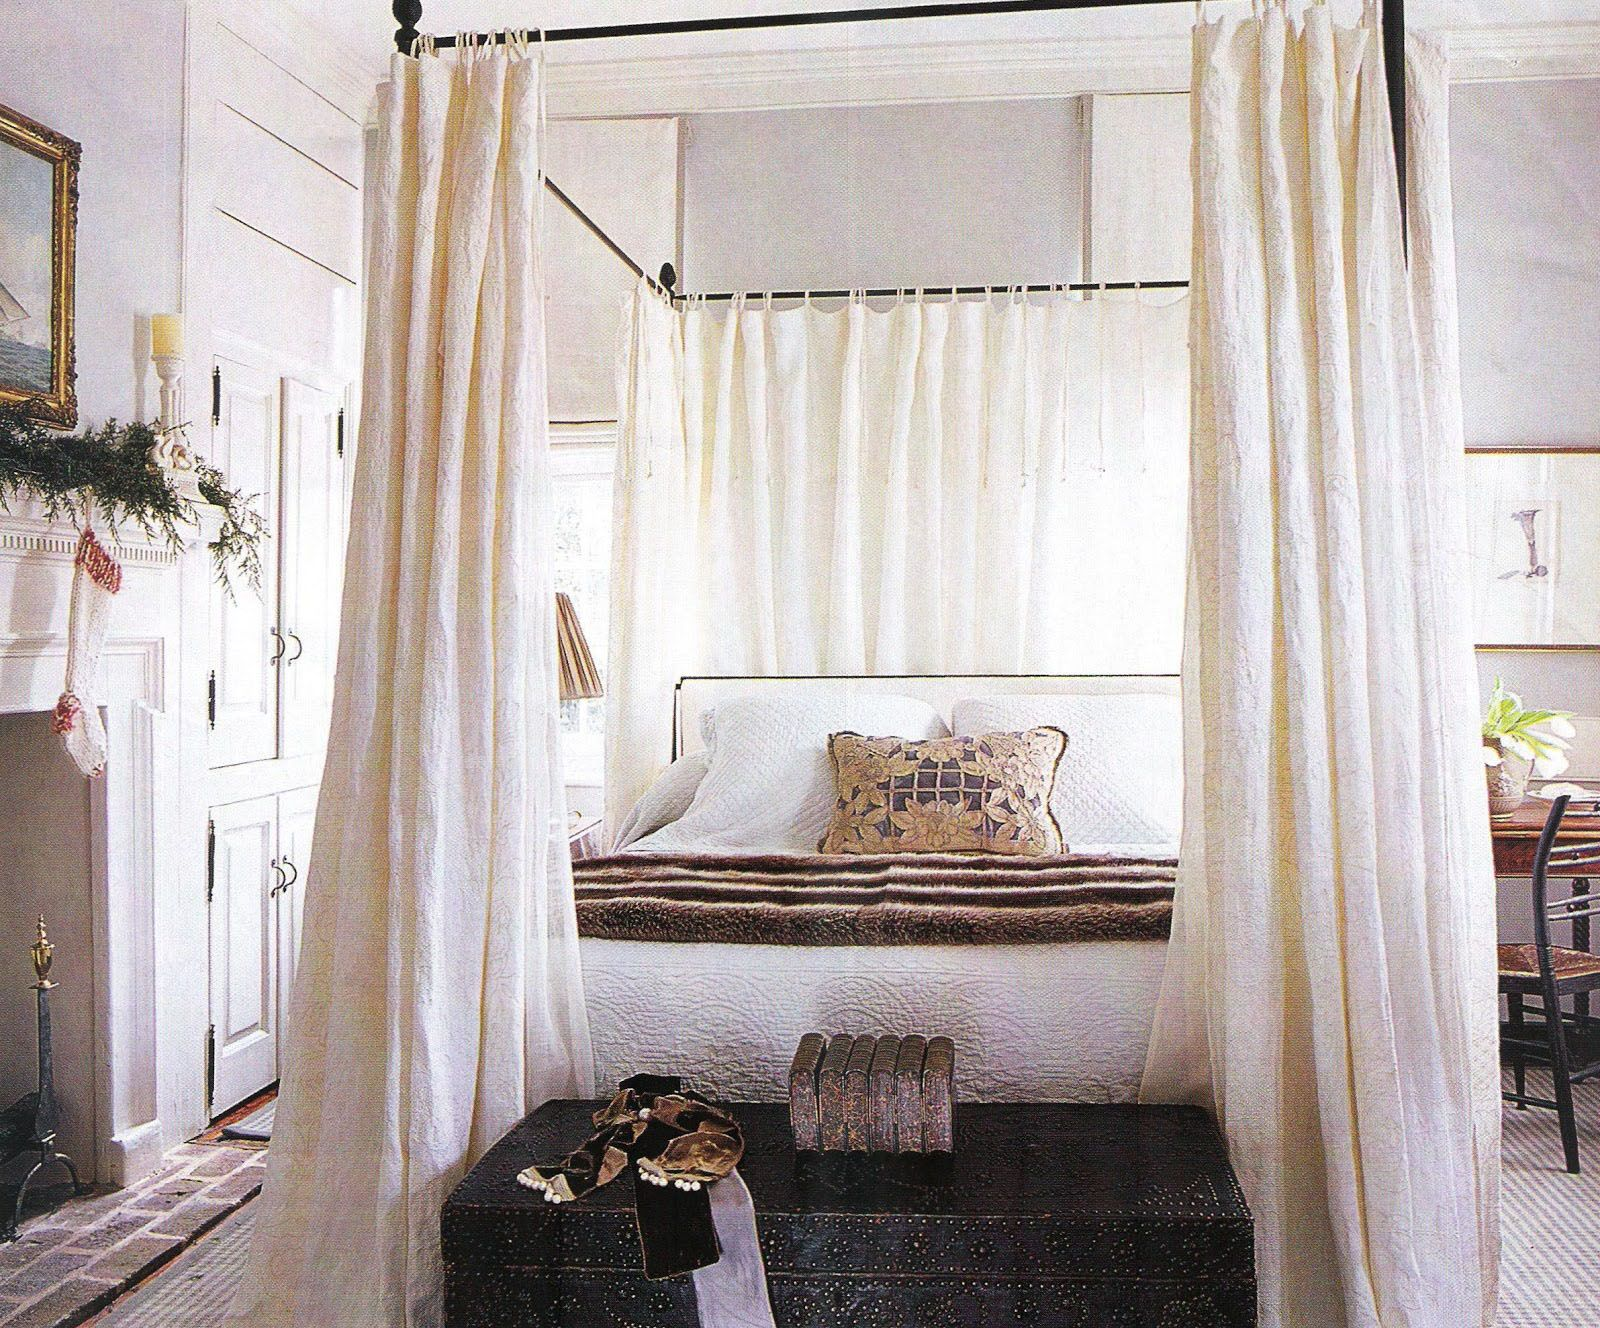 1000+ images about Bed in the English style or Canopy Bed on ...